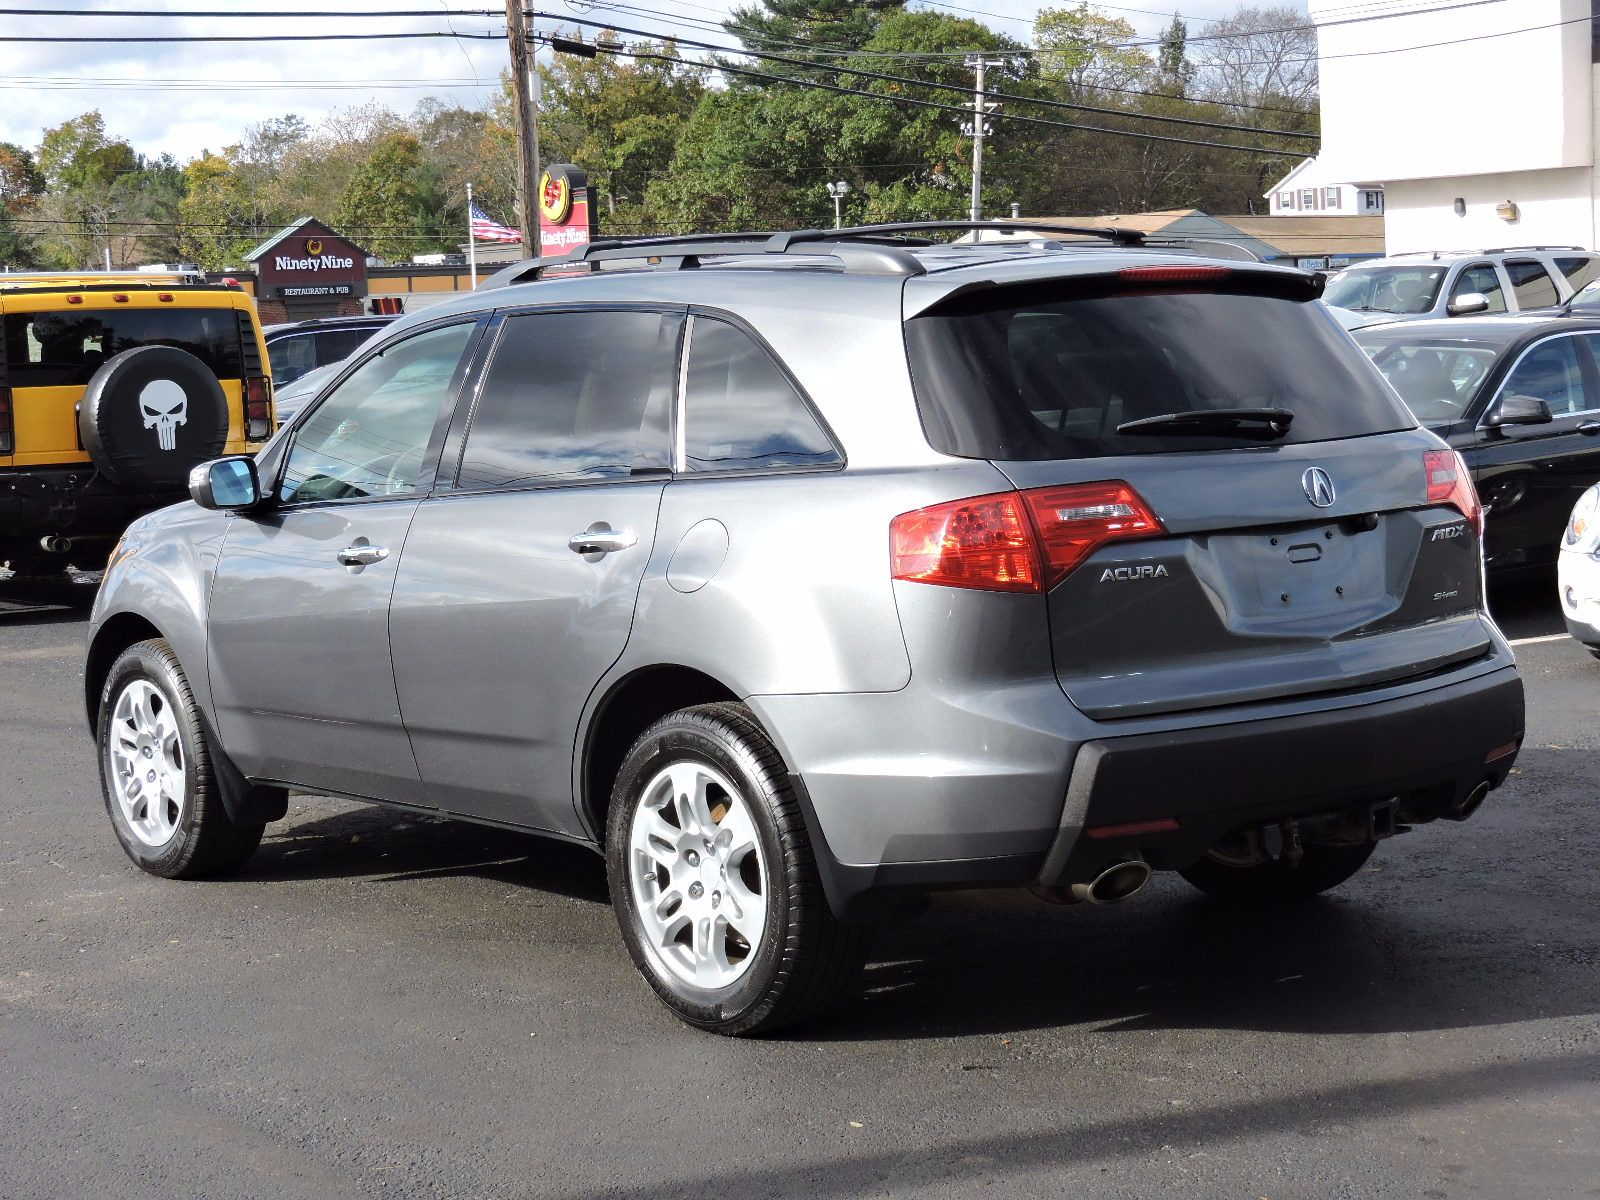 2008 Acura MDX - All Wheel Drive - Navigation